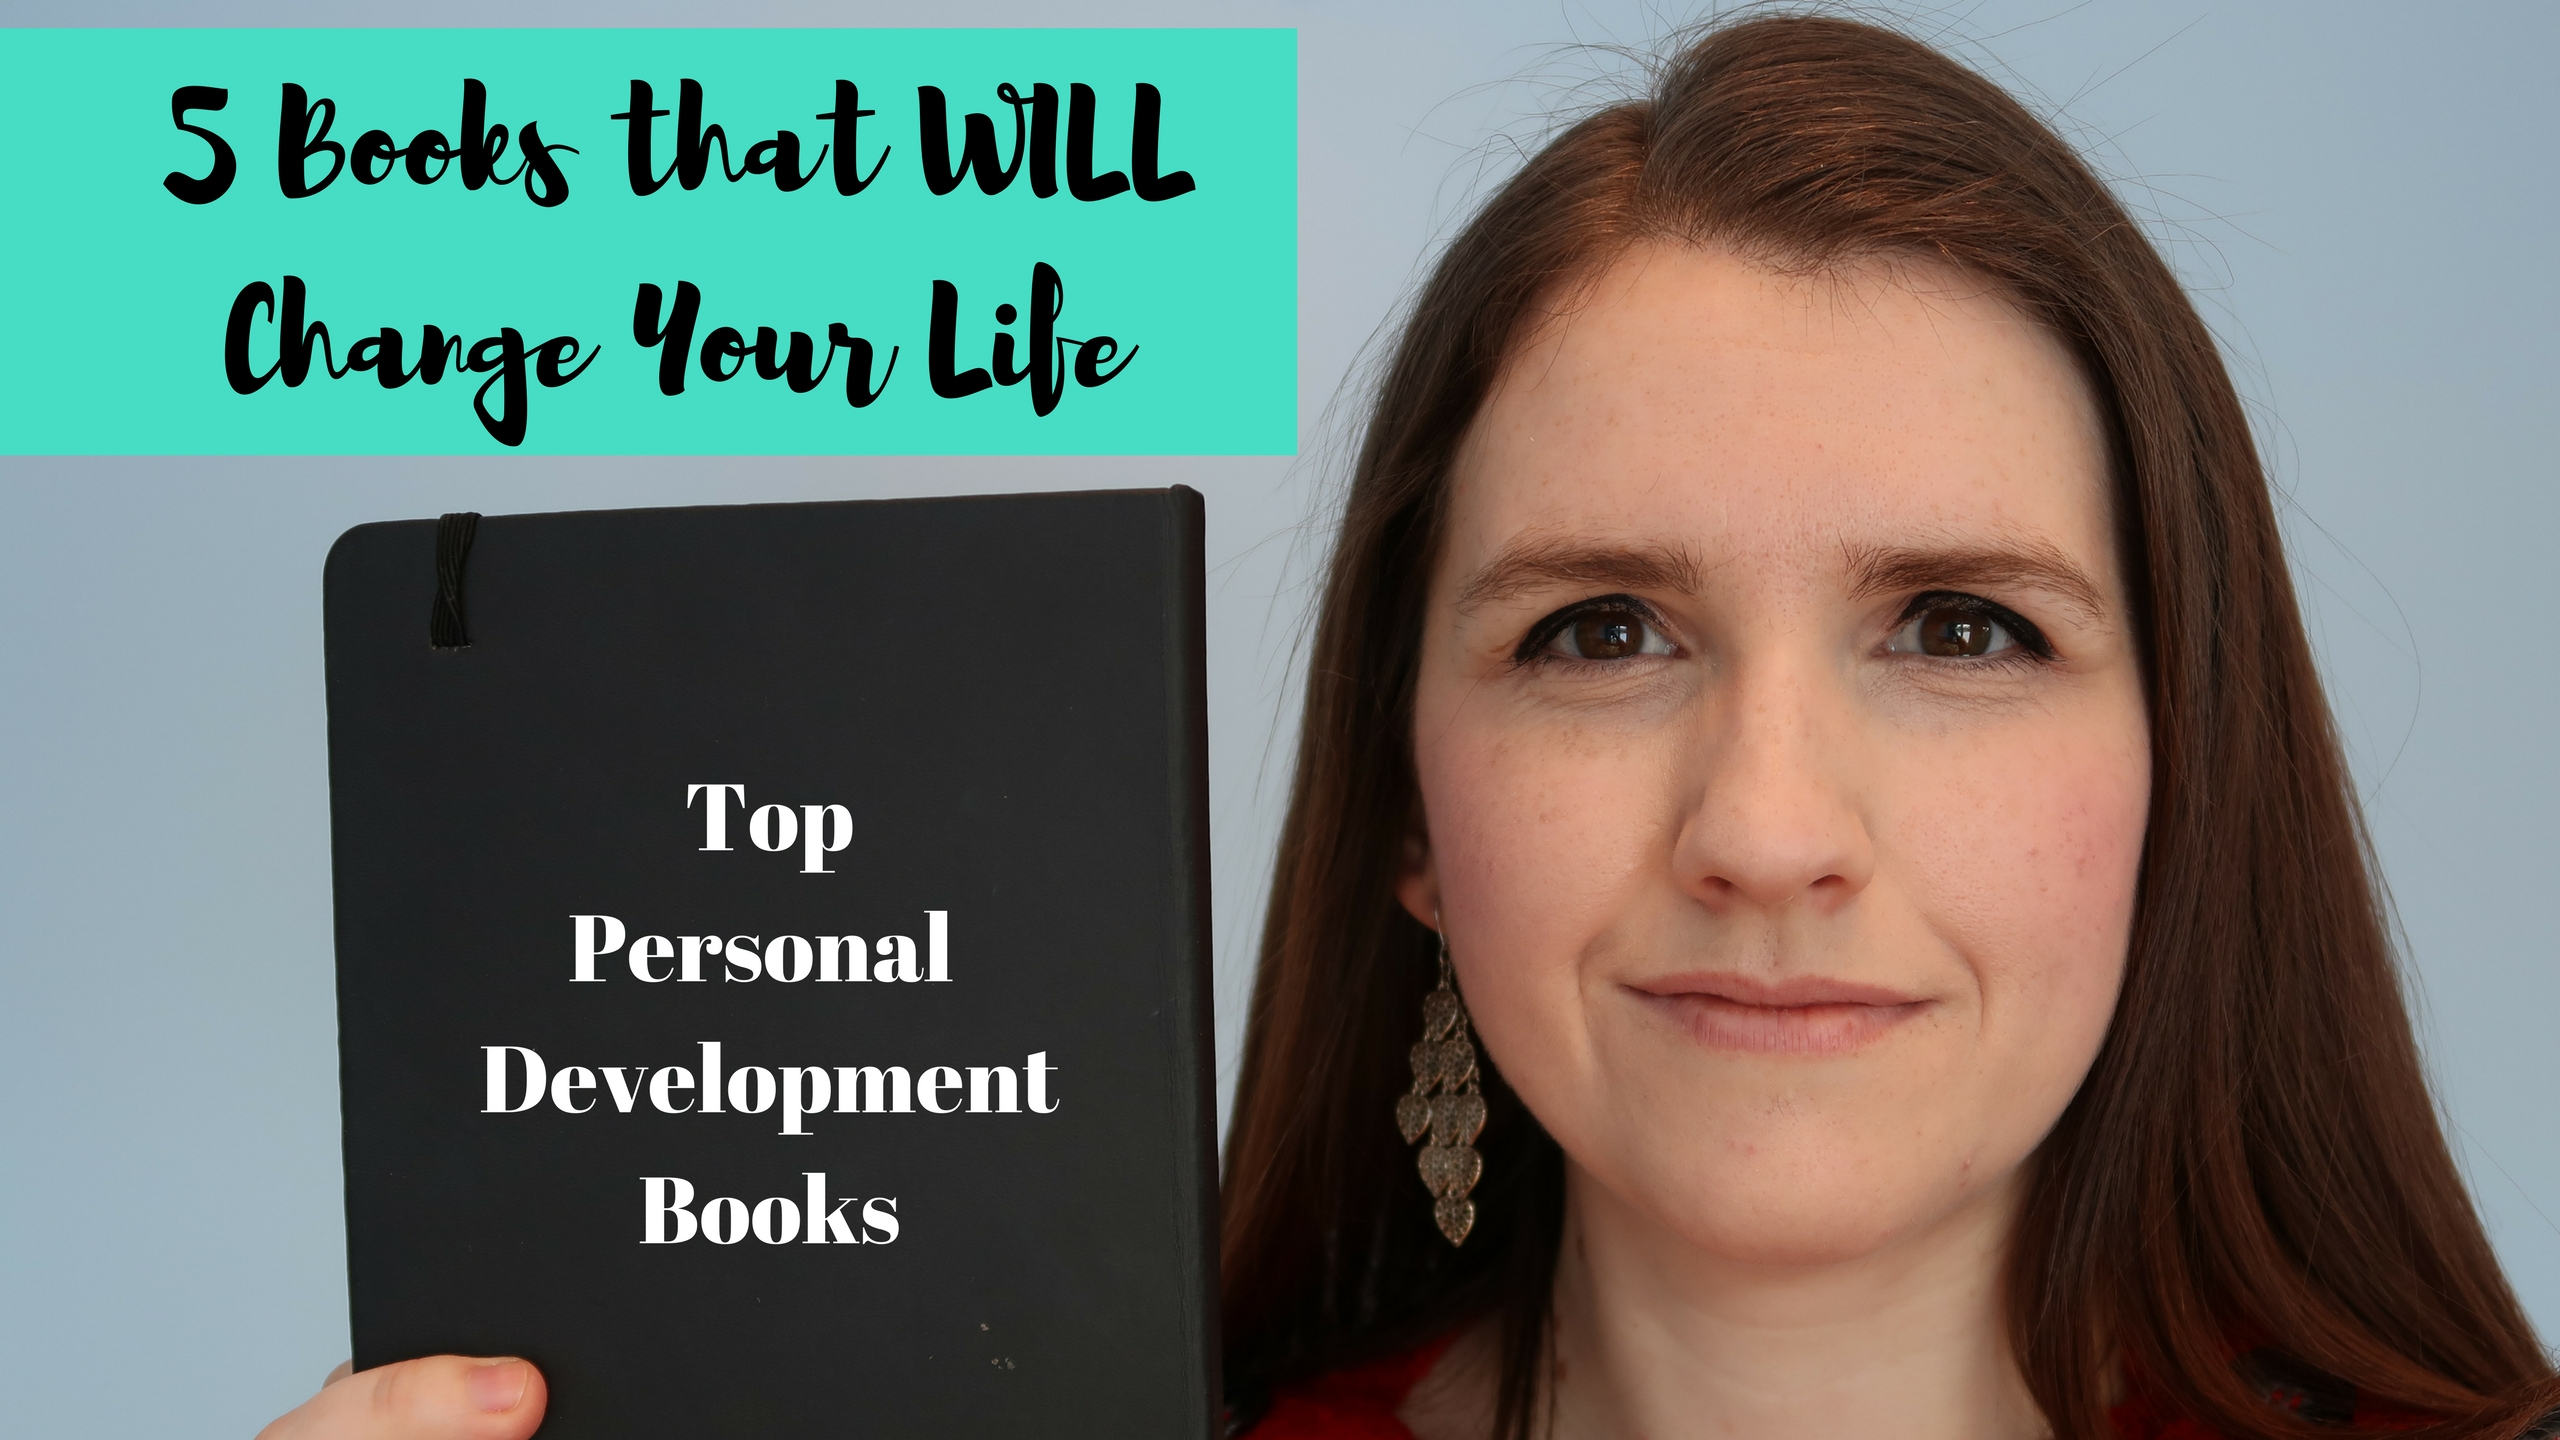 5 Books that WILL Change Your Life - Top Personal Development Books